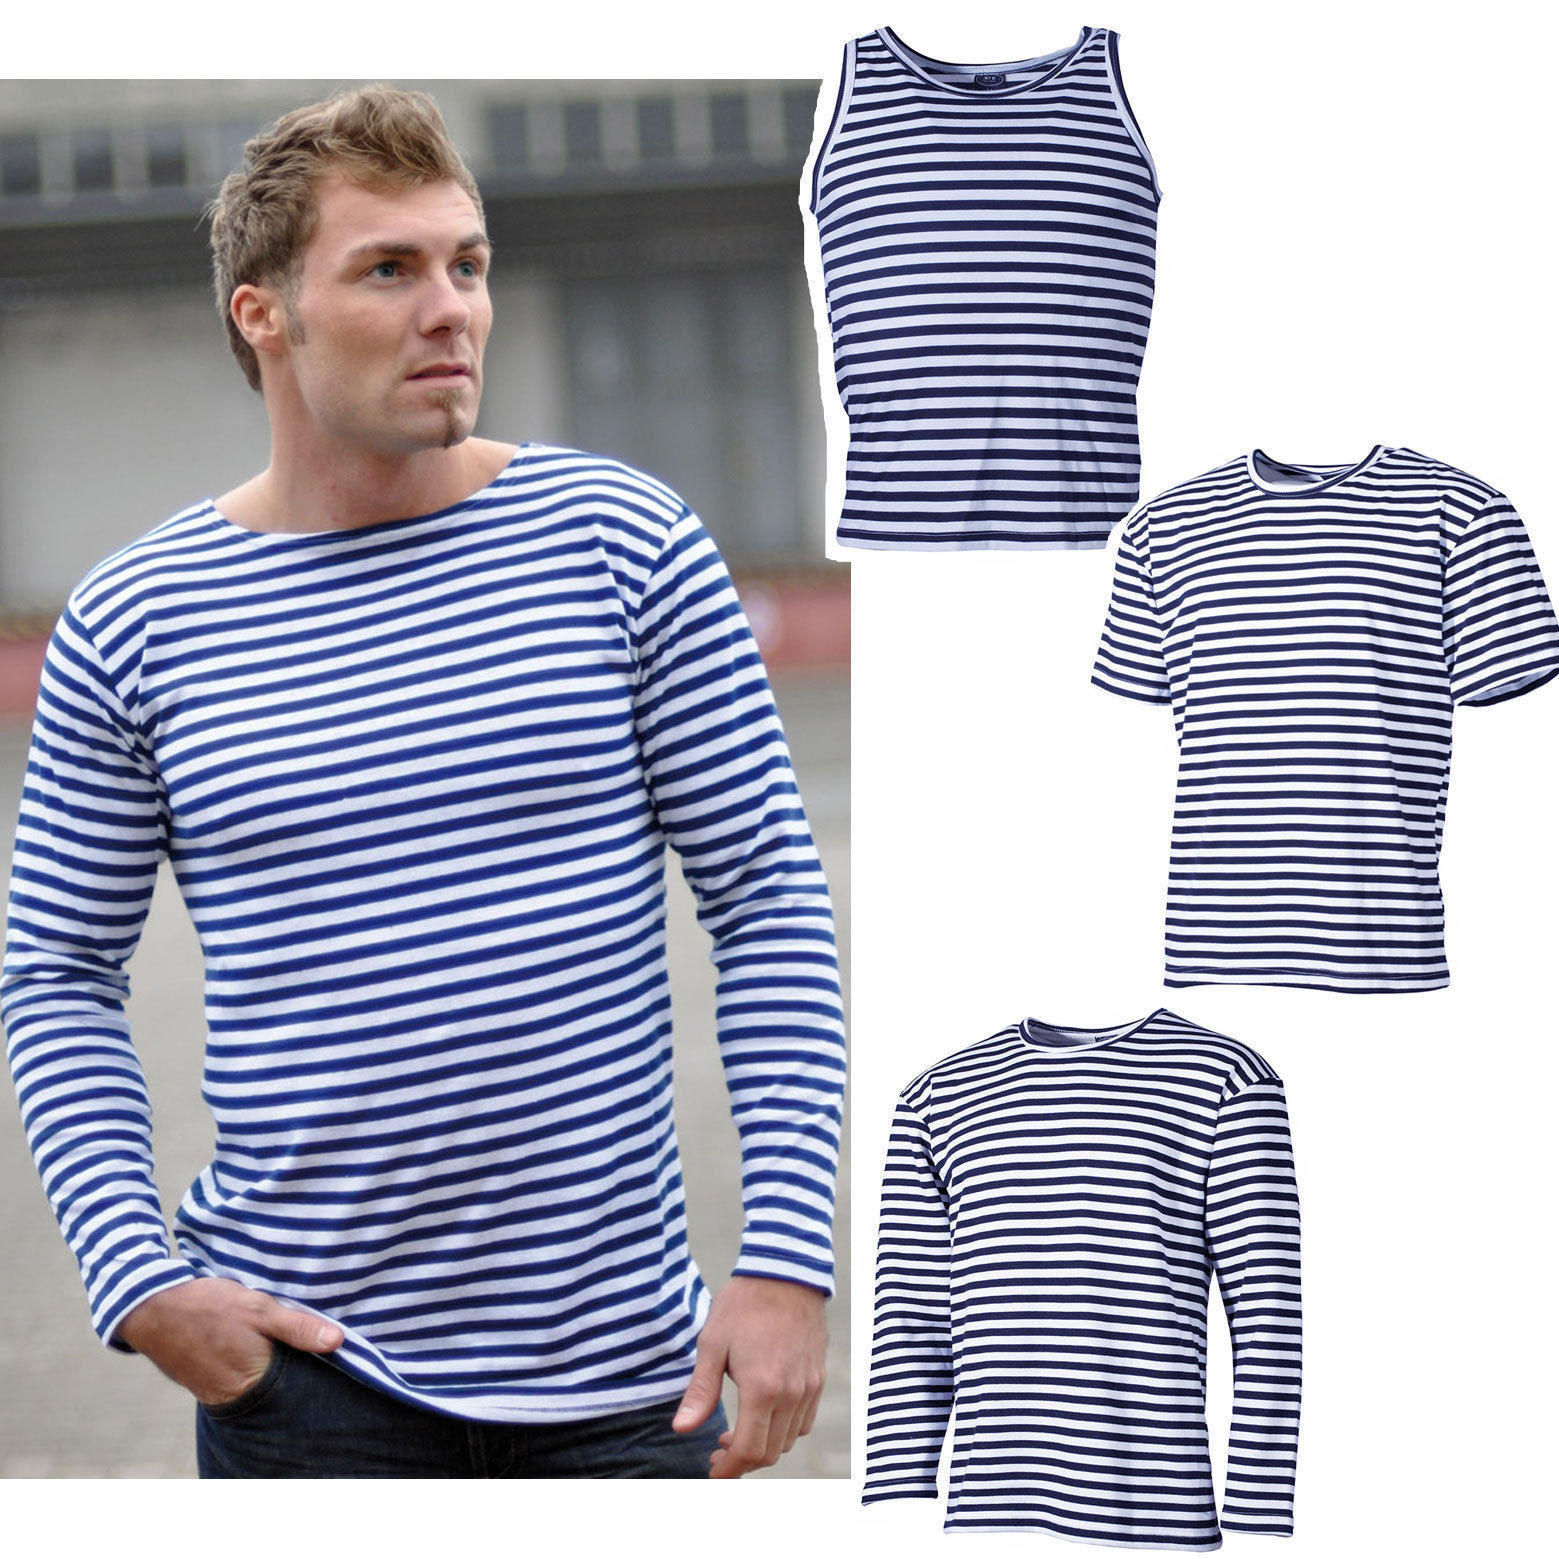 russisches marine shirt top oder pullover xs 3xl blau wei gestreift matrosen ebay. Black Bedroom Furniture Sets. Home Design Ideas